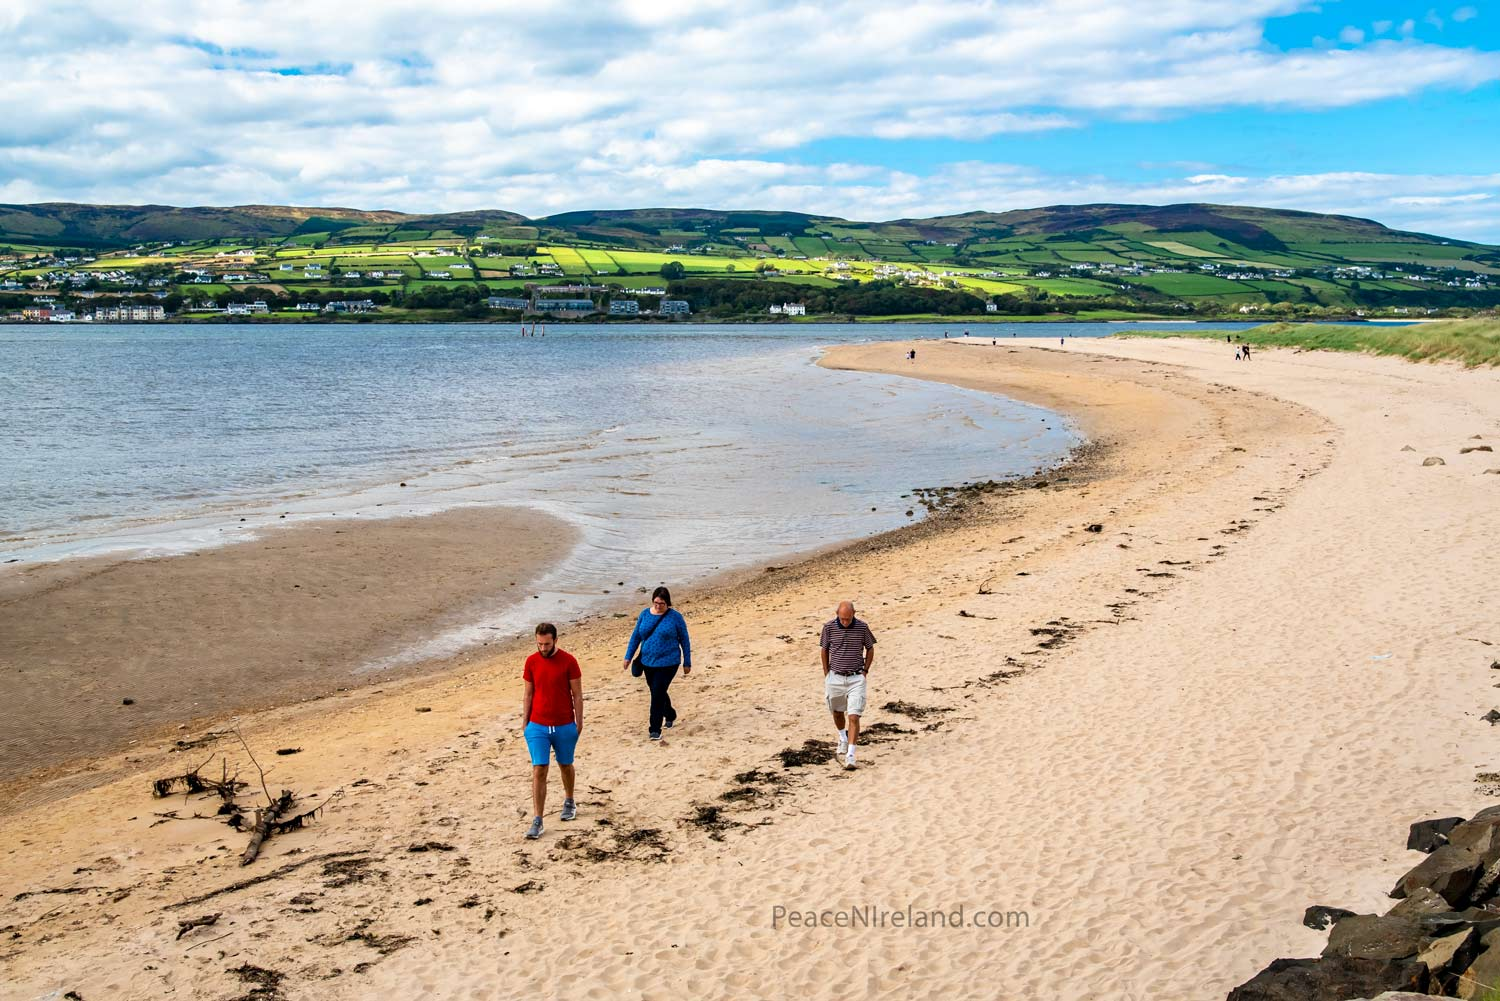 Just across the sand dunes, Benone Strand, a popular beach in Northern Ireland